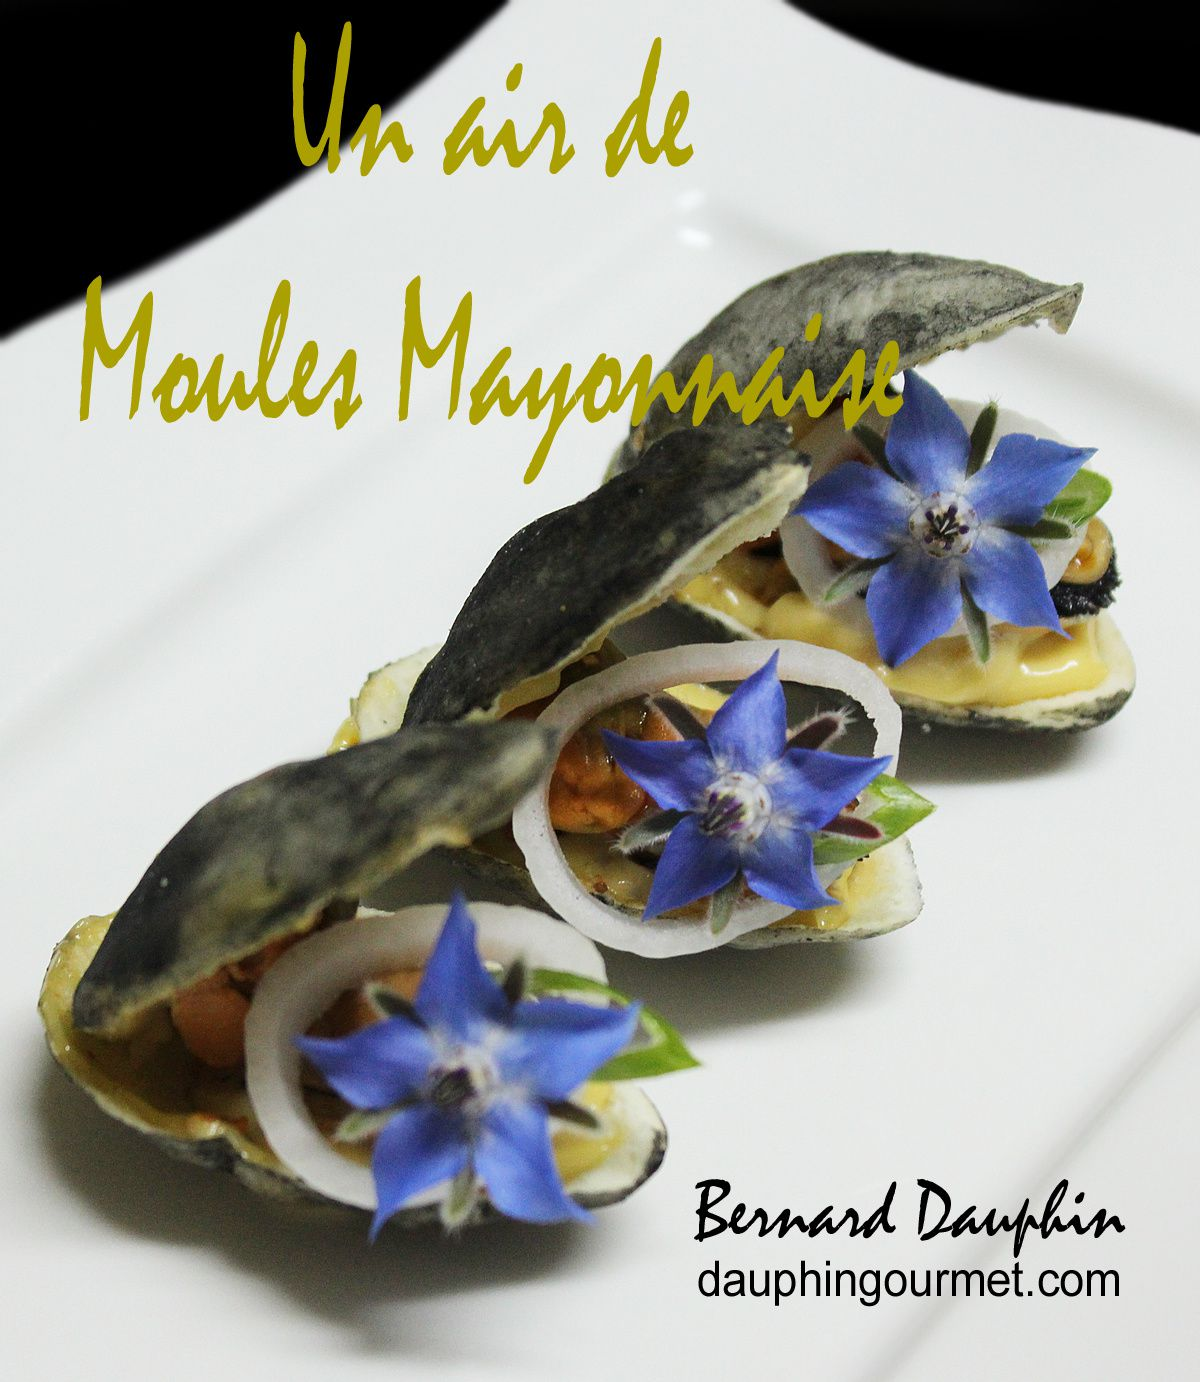 UN AIR DE MOULES MAYONNAISE